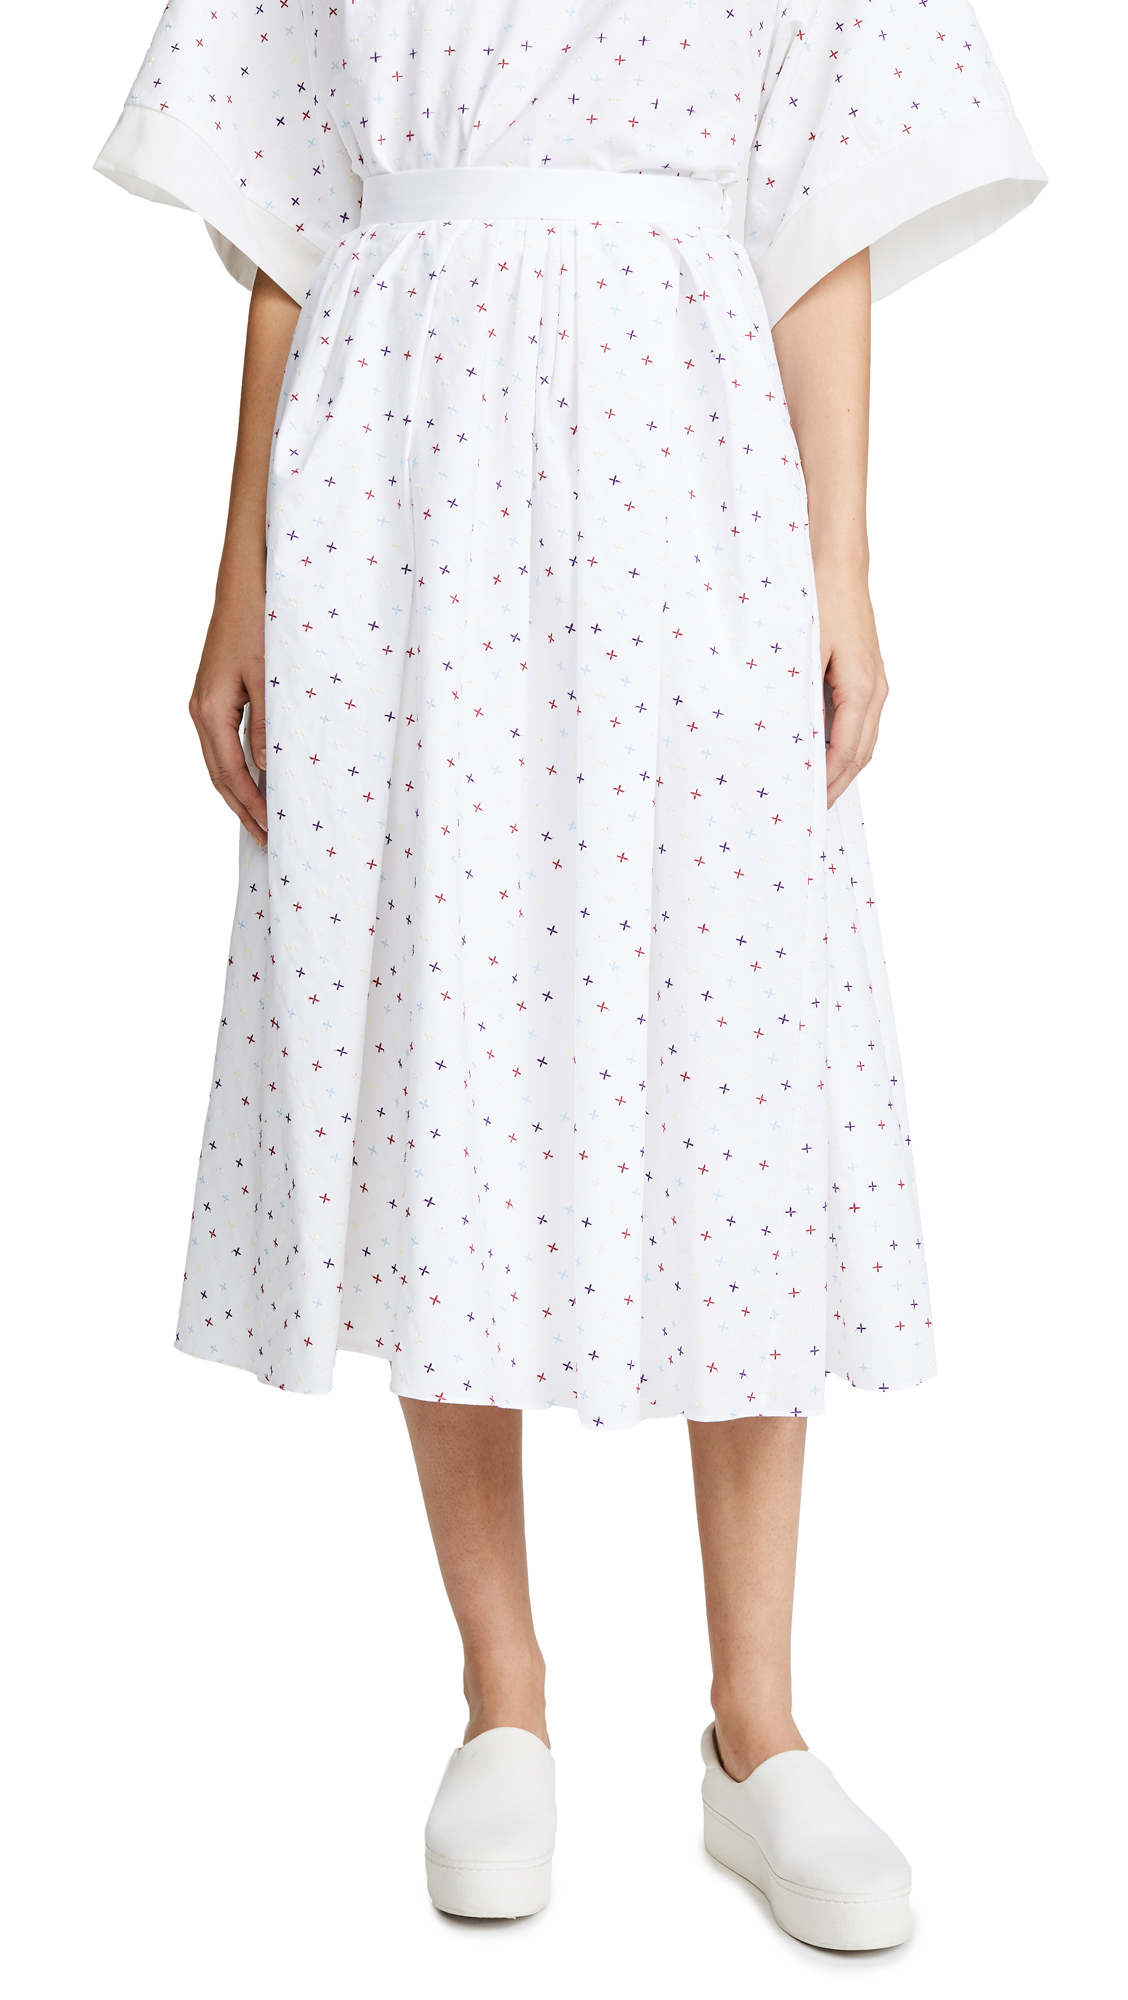 Adam Lippes Gathered Midi Skirt In White Multi